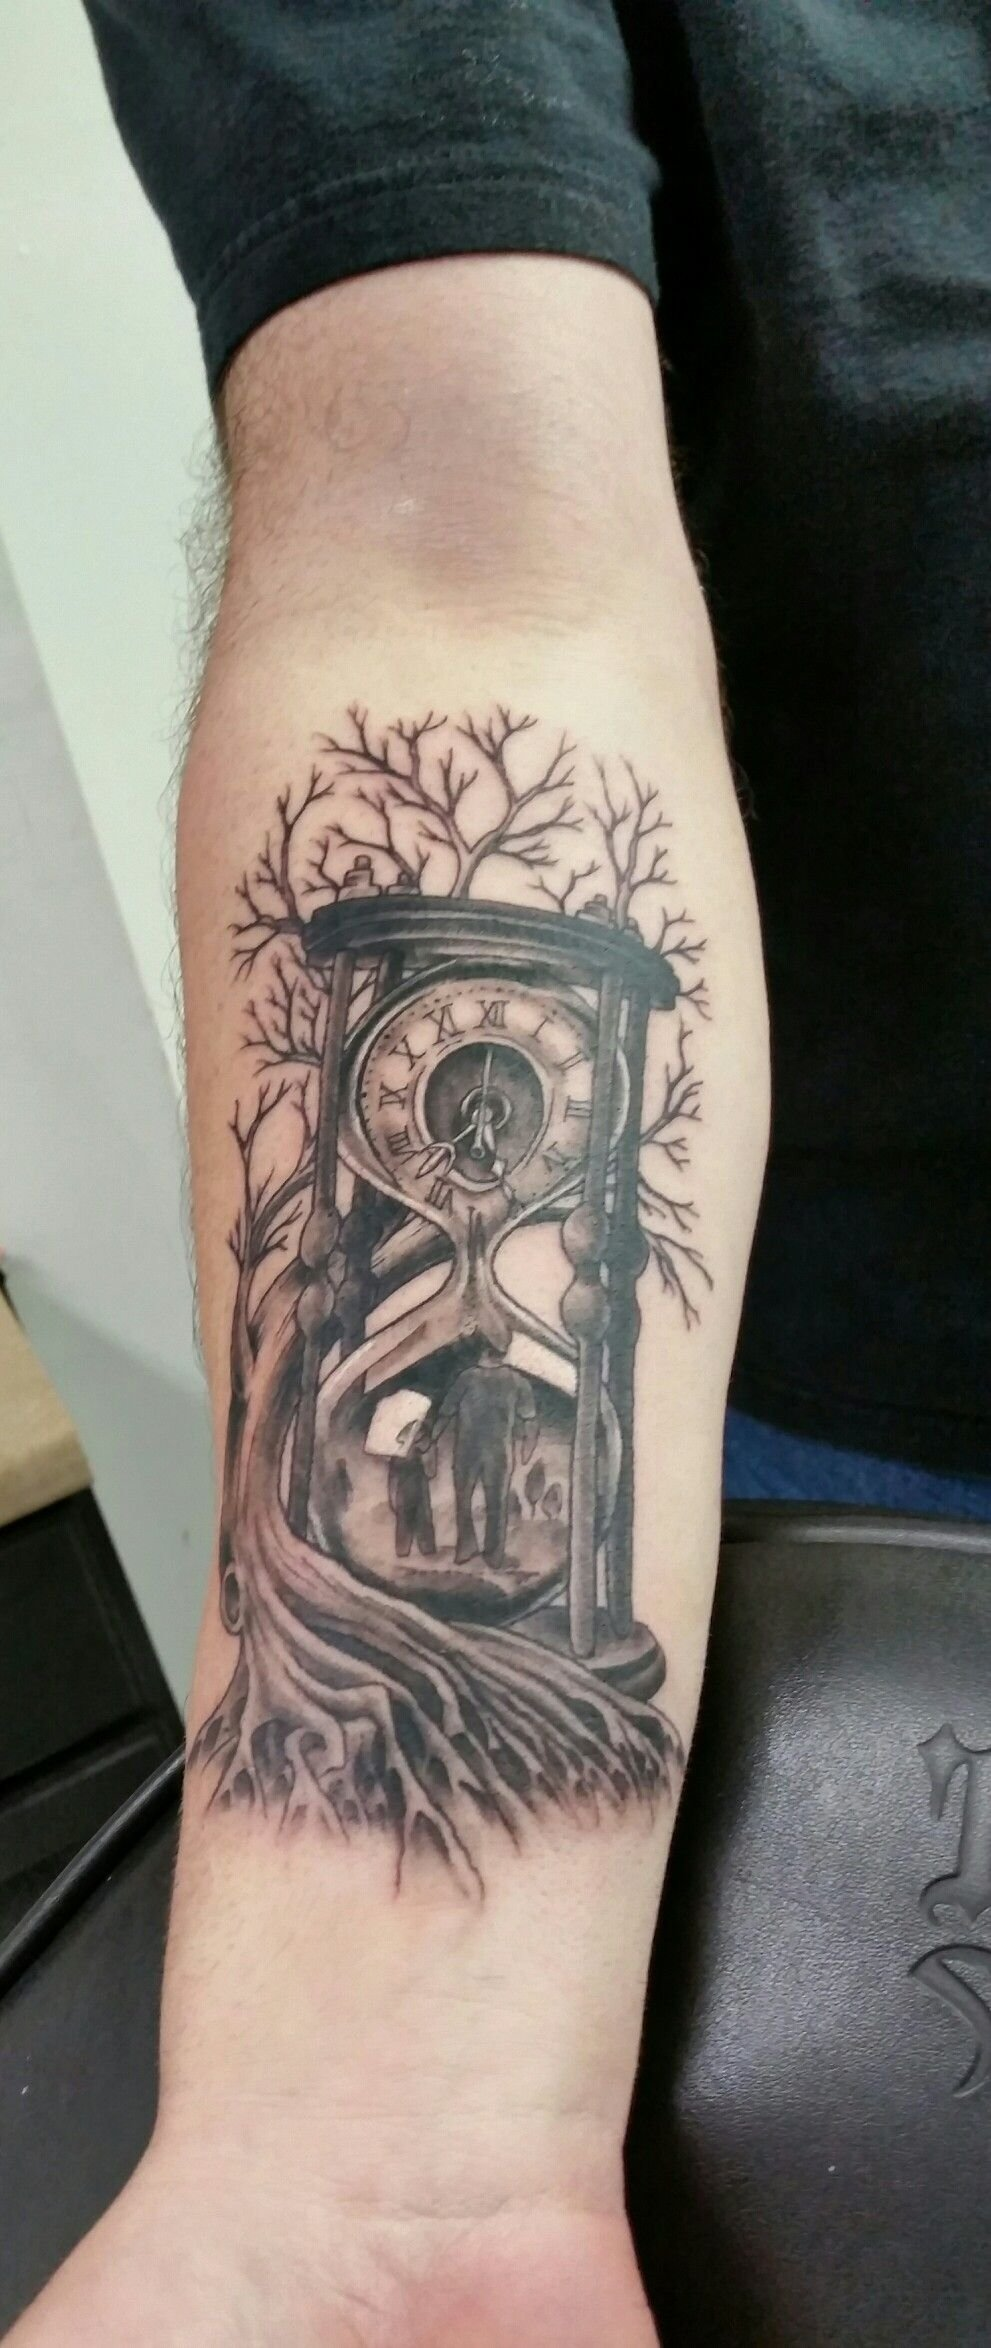 10 Best Son Tattoo Ideas For Dad time family father and son hour glass tree roots loving the